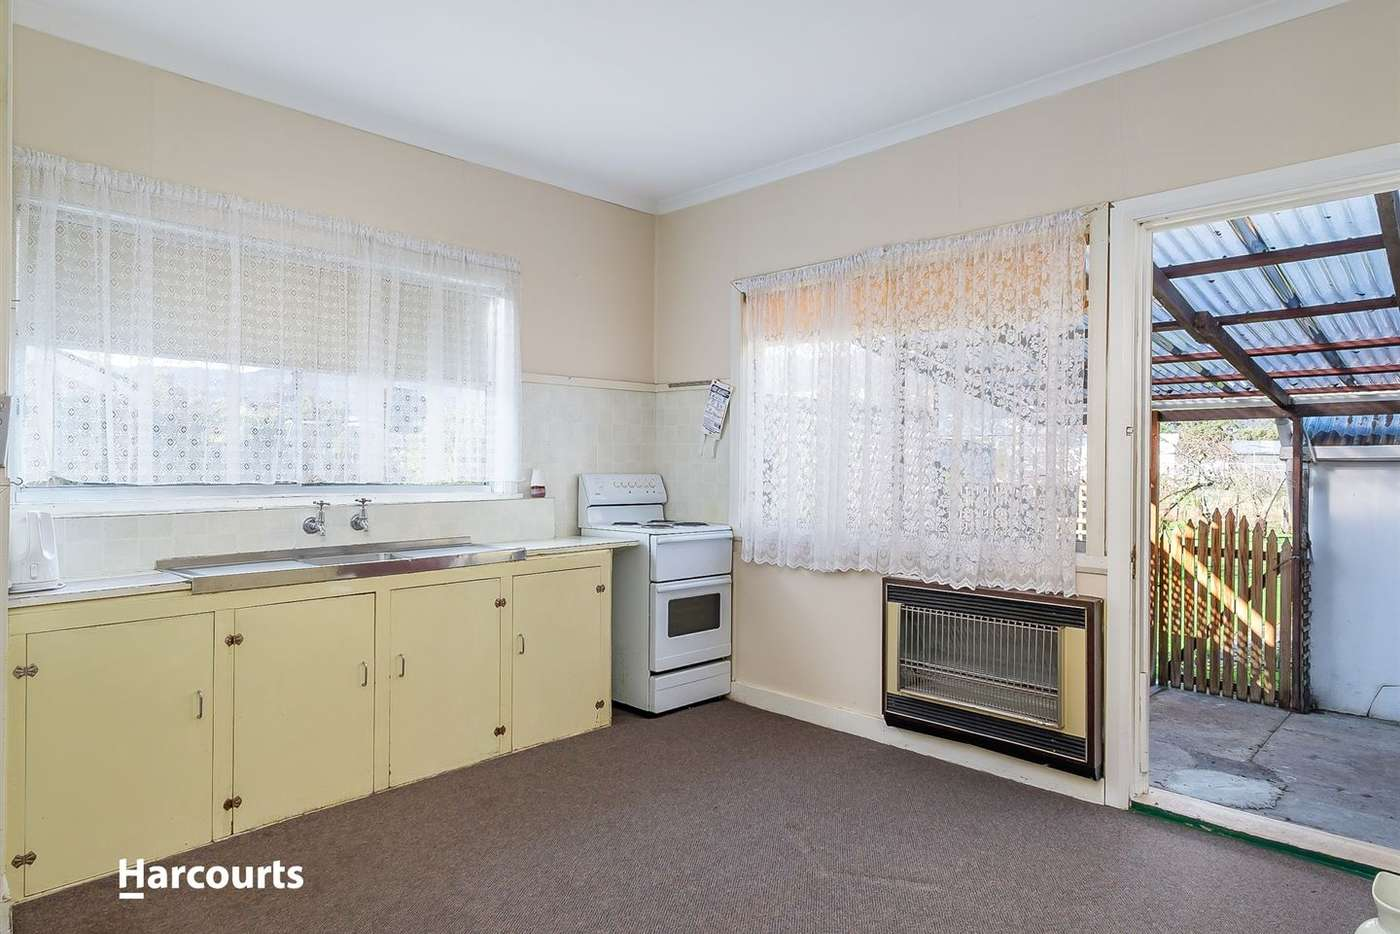 Fifth view of Homely house listing, 9 Stride Street, Huonville TAS 7109